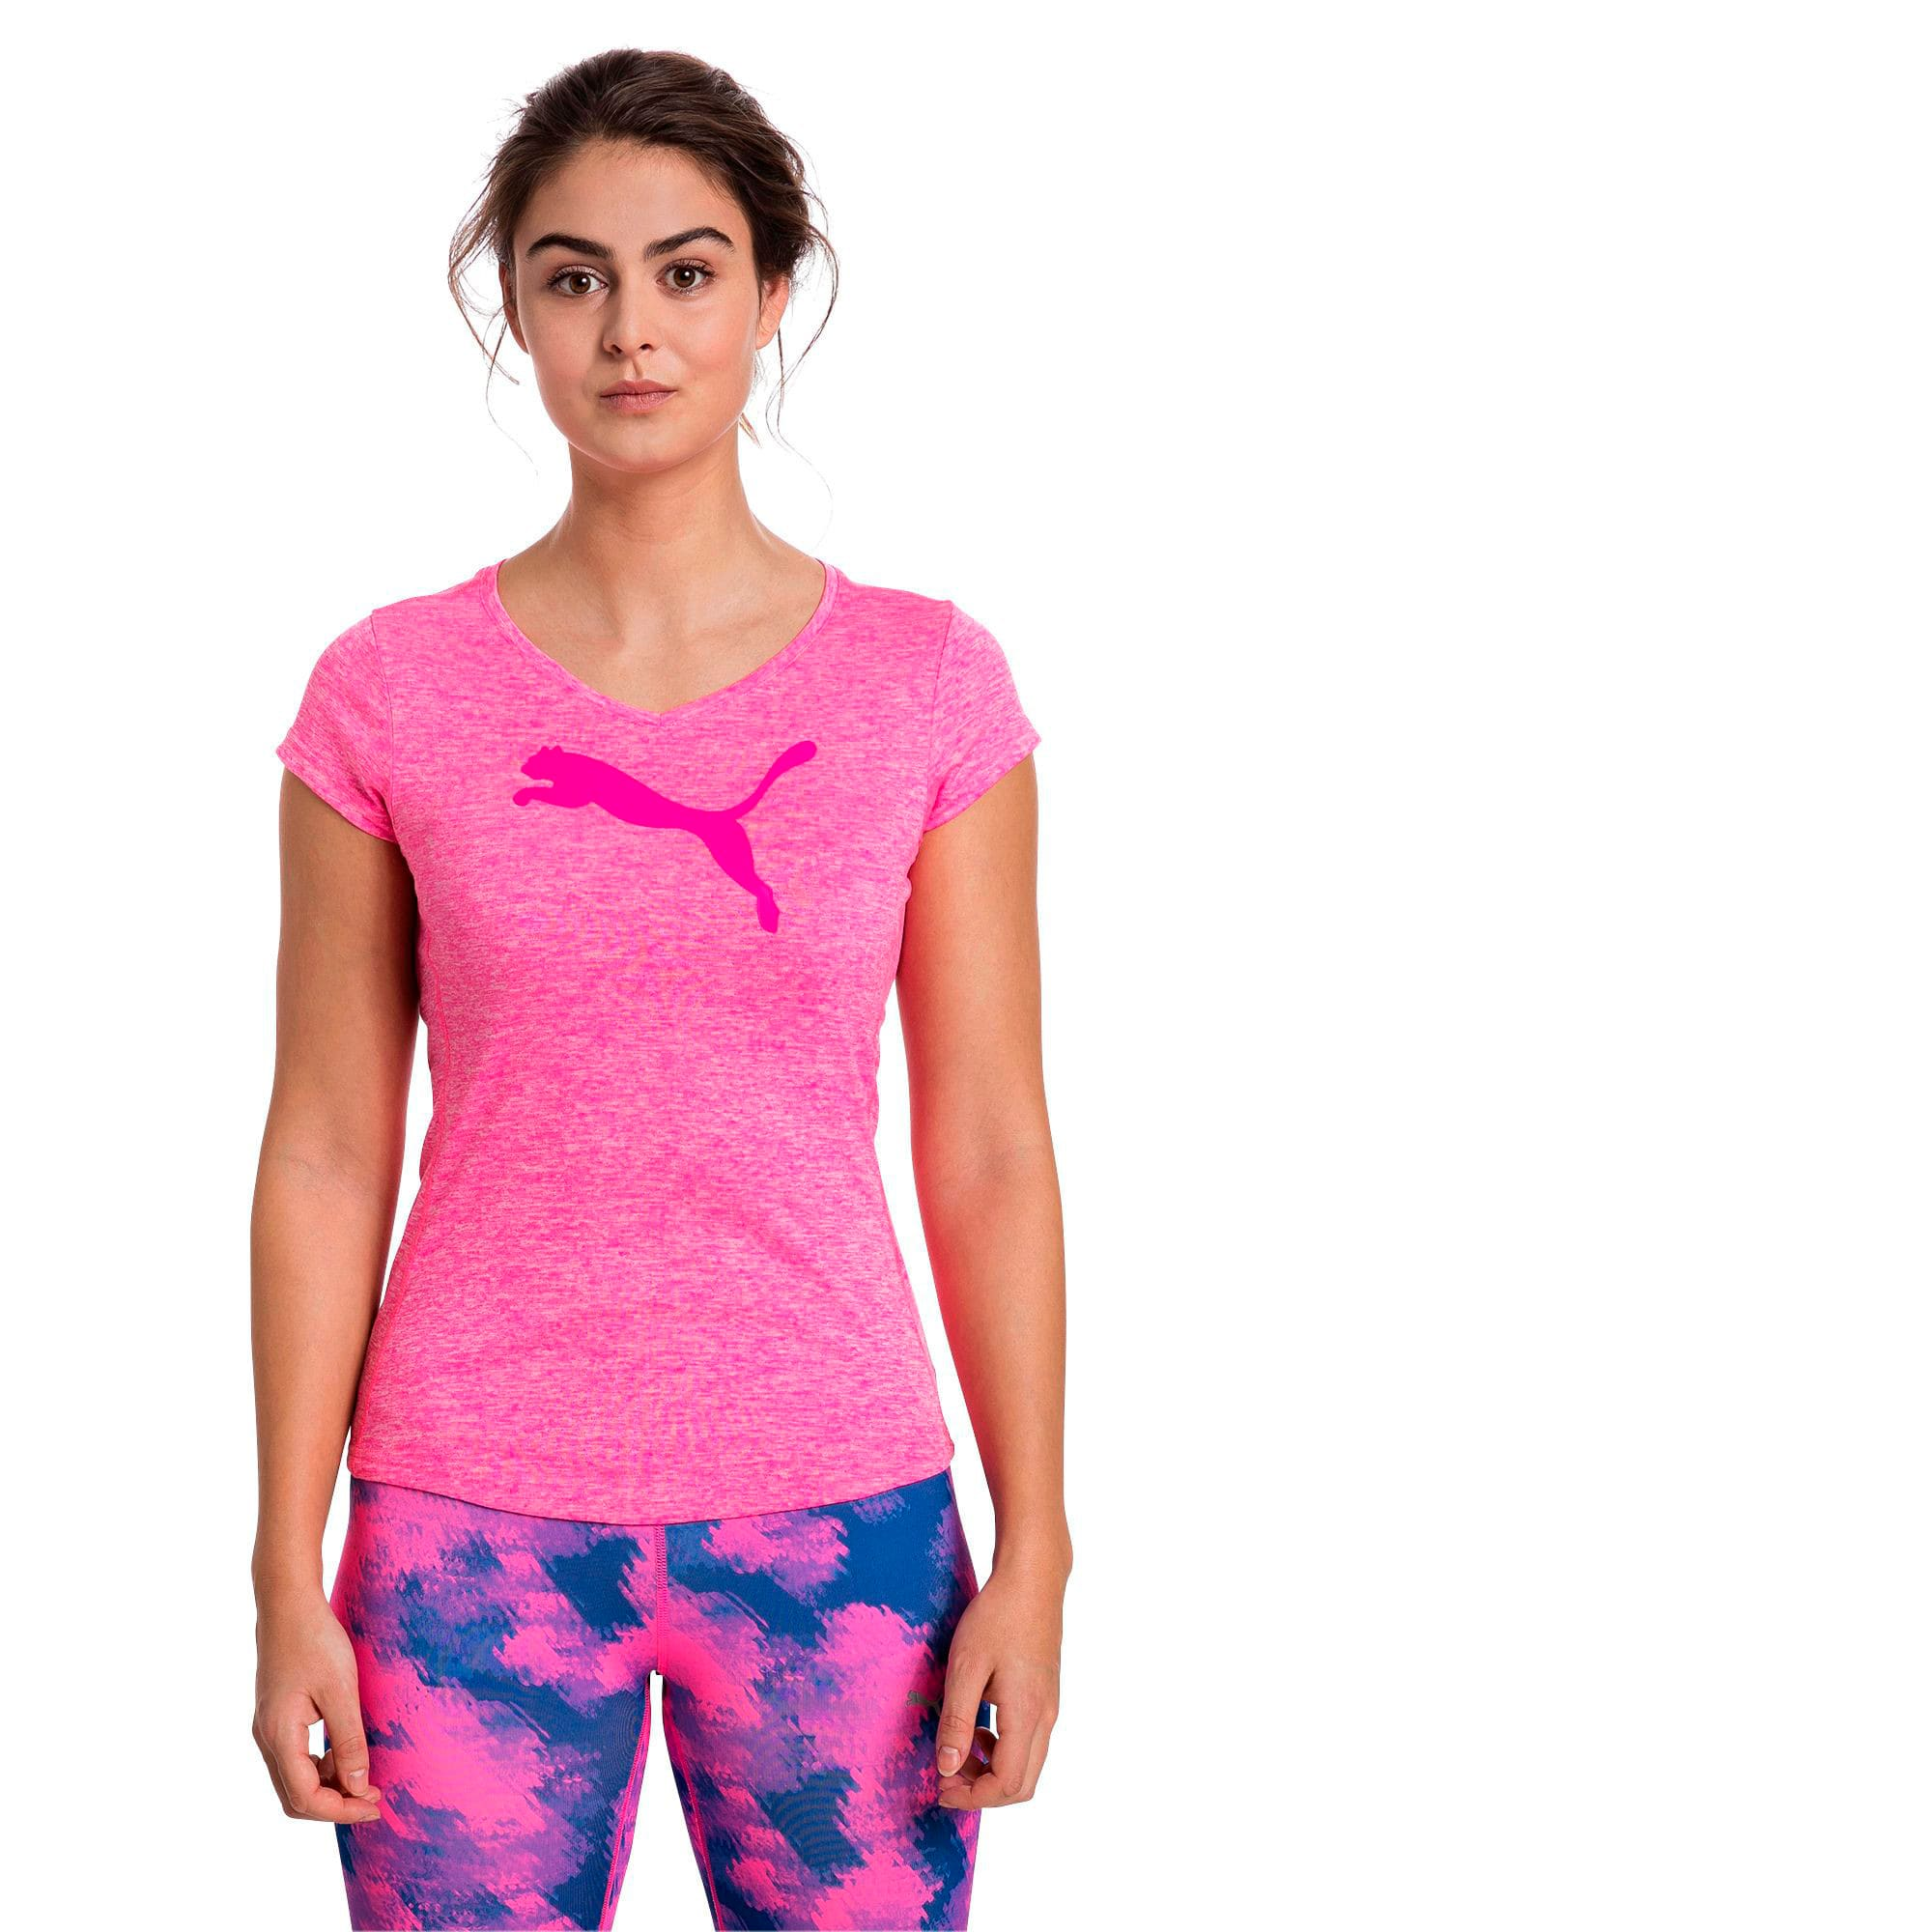 Thumbnail 1 of Active Training Women's Heather Cat T-Shirt, KNOCKOUT PINK Heather, medium-IND